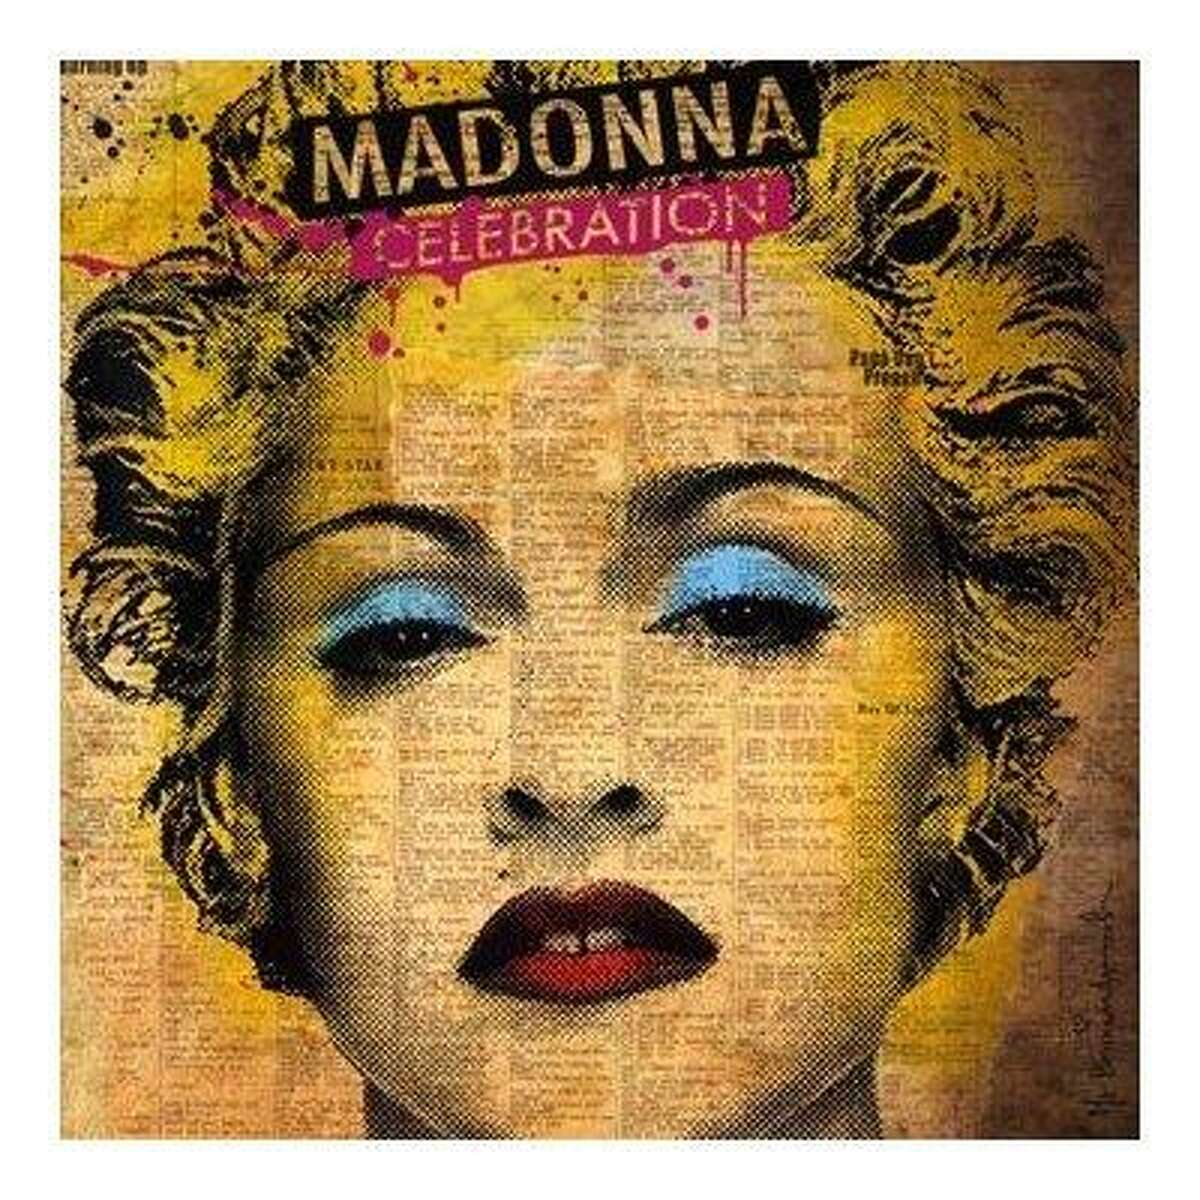 Celebration (3 1/2 stars), Madonna, Warner Bros. Even with two discs and more than 30 songs, Madonna's impressive Celebration package is missing a few key tracks (True Blue, Causing a Commotion, I'll Remember, Don't Cry For Me Argentina). Read more about her new album here.